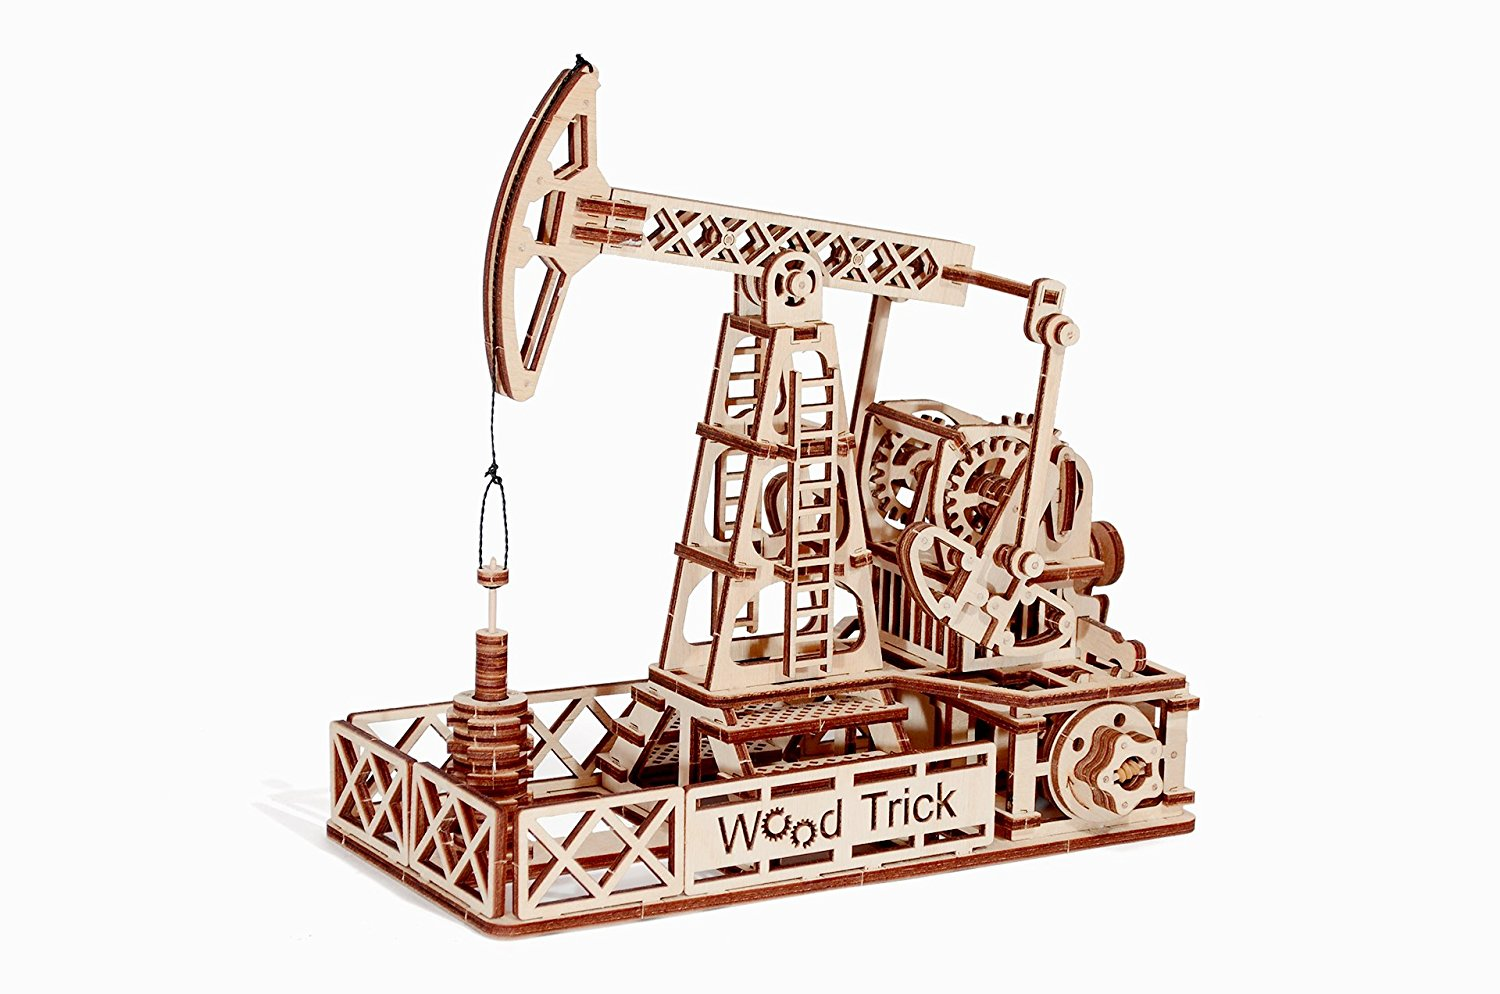 Wood Trick 3D Mechanical Model OIL DERRICK Wooden Puzzle, Assembly Constructor, Brain Teaser, Best DIY Toy, IQ... by woodtrick